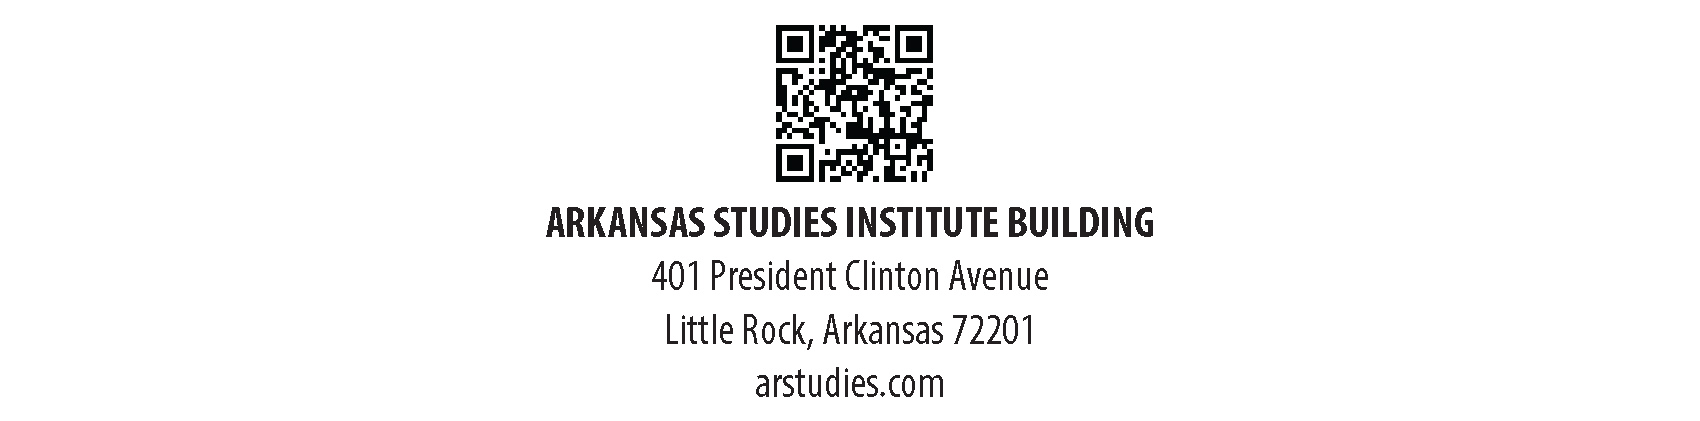 The Arkansas Studies Institute Building 401 President Clinton Avenue Little Rock Arkansas 72201 arstudies.org